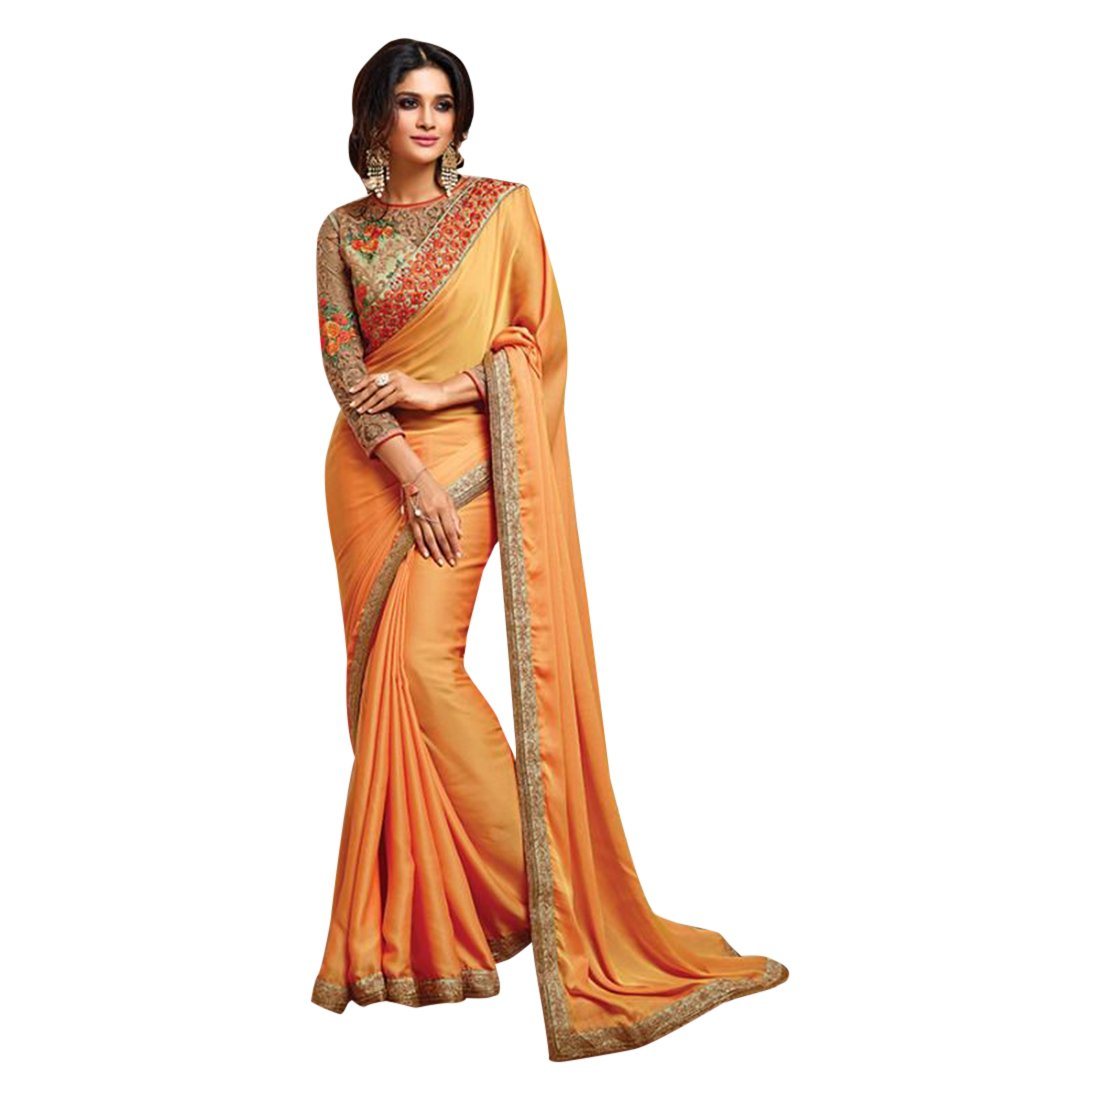 Designer Bollywood Saree Sari for Women Latest Indian Ethnic Collection Blouse Party Wear Festive wedding 943 10